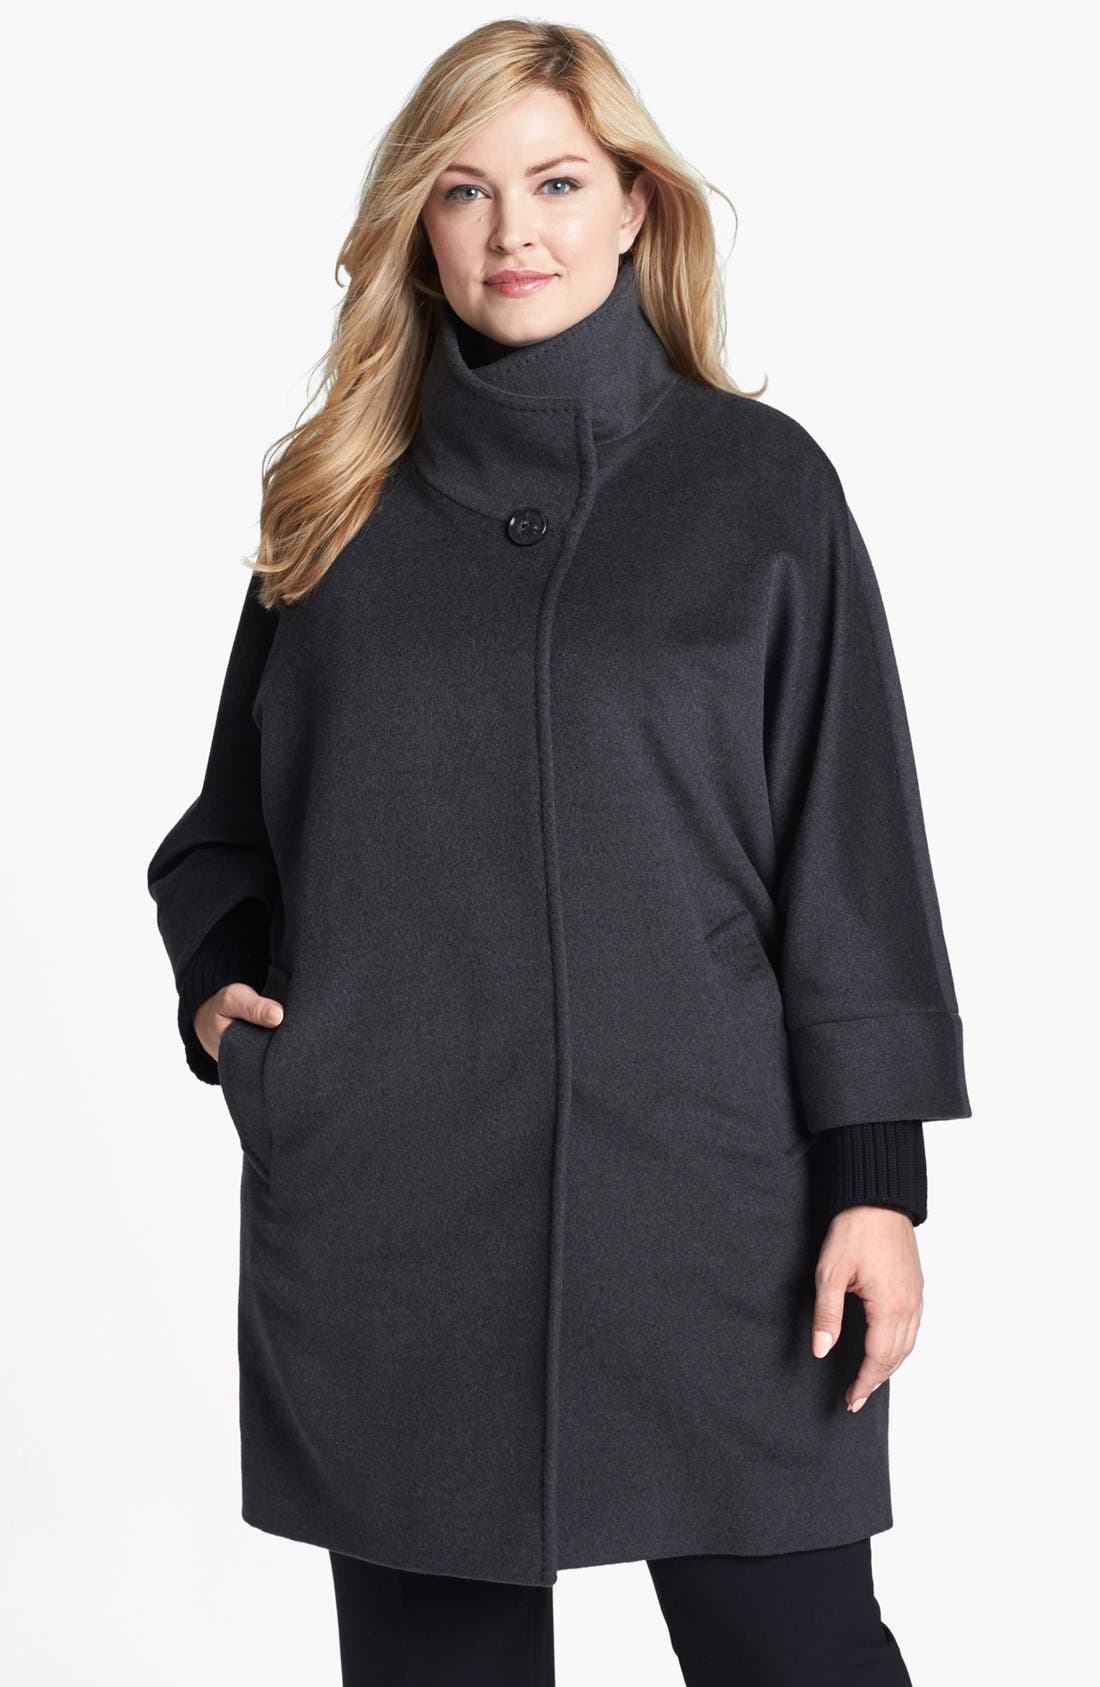 Alternate Image 1 Selected - Cinzia Rocca Knit Cuff Wool Car Coat (Plus Size)